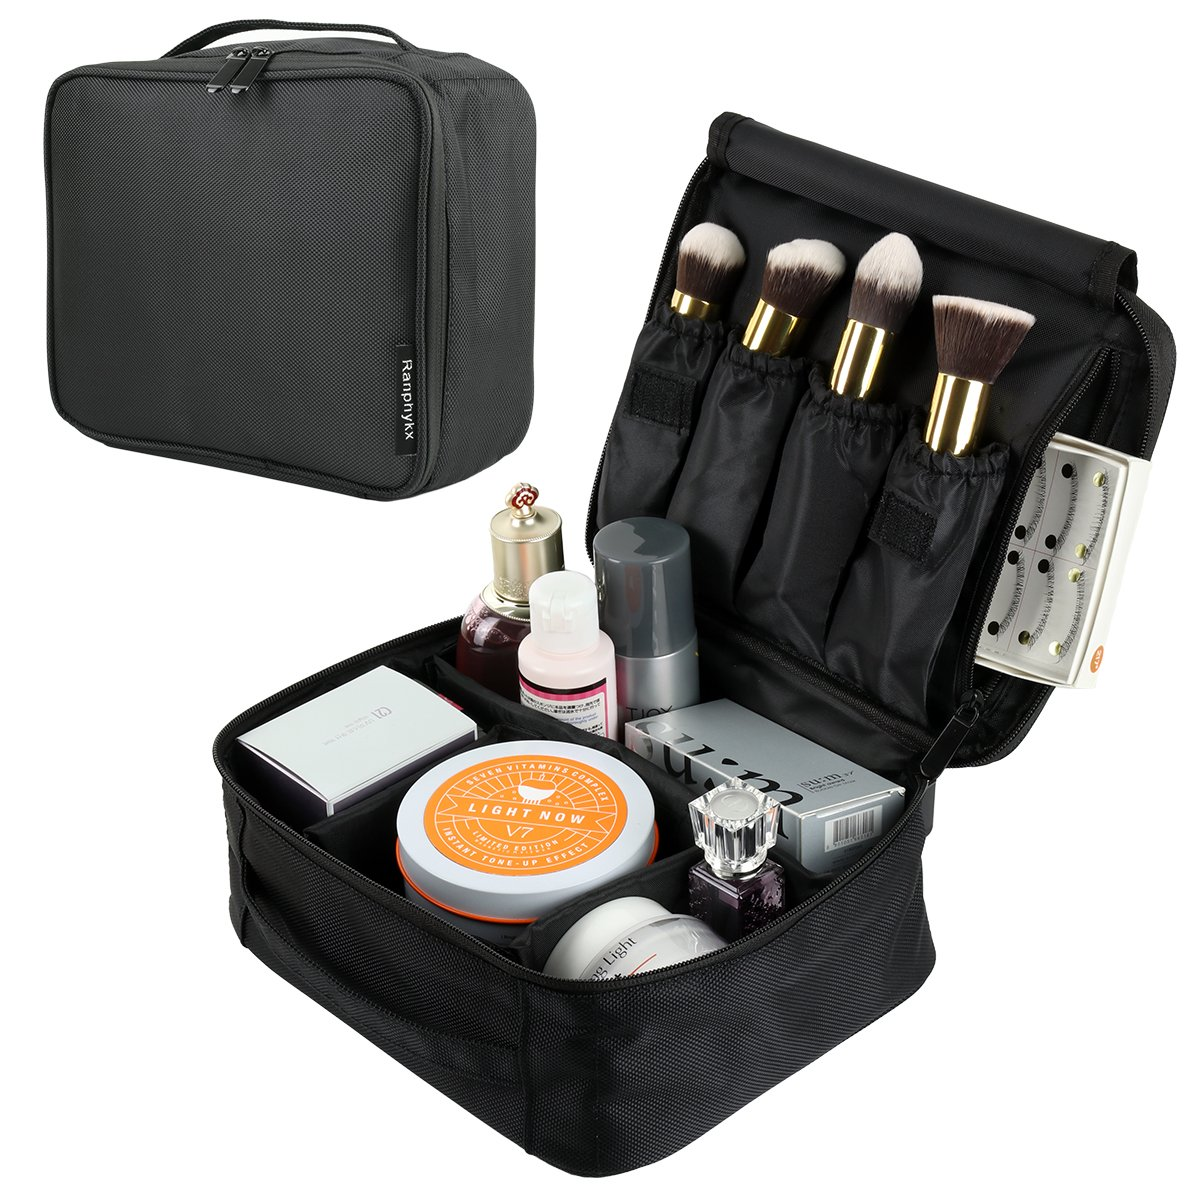 Makeup Train Case, Ranphykx 9.8 Portable Travel Makeup Bag with Adjustable Dividers